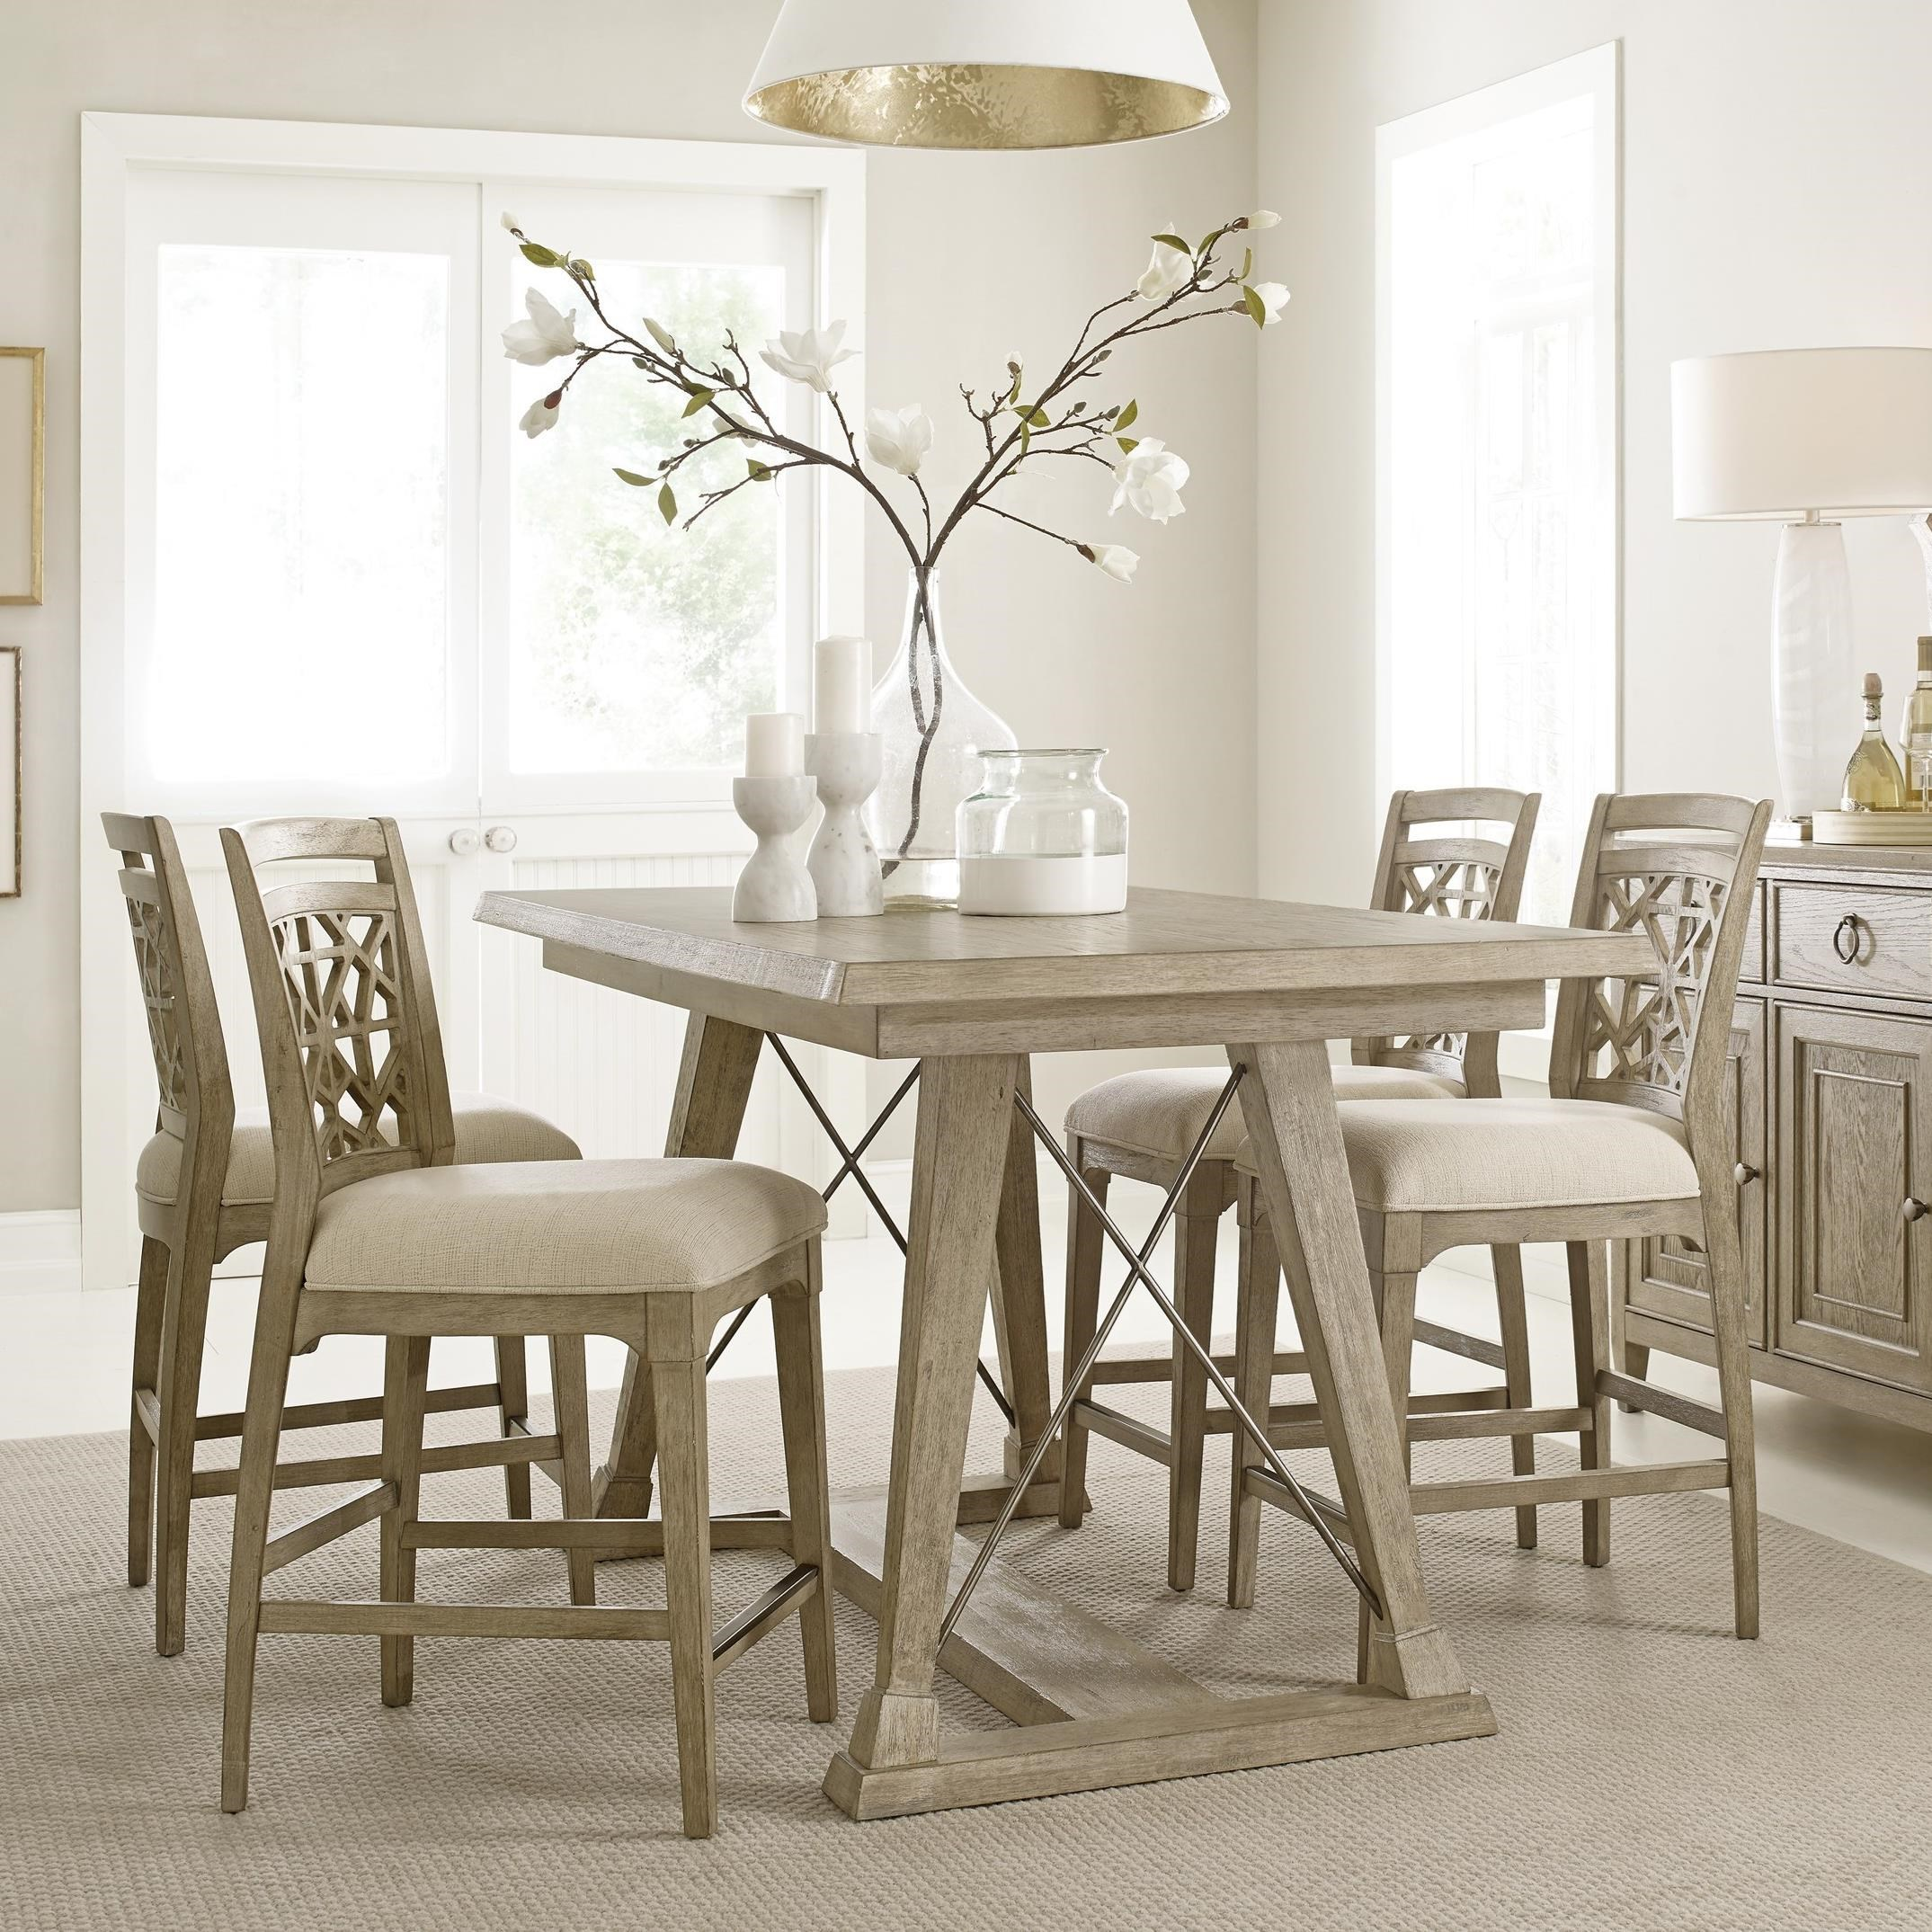 American Drew Dining Room Furniture: American Drew Vista Relaxed Vintage 5 Piece Dining Set